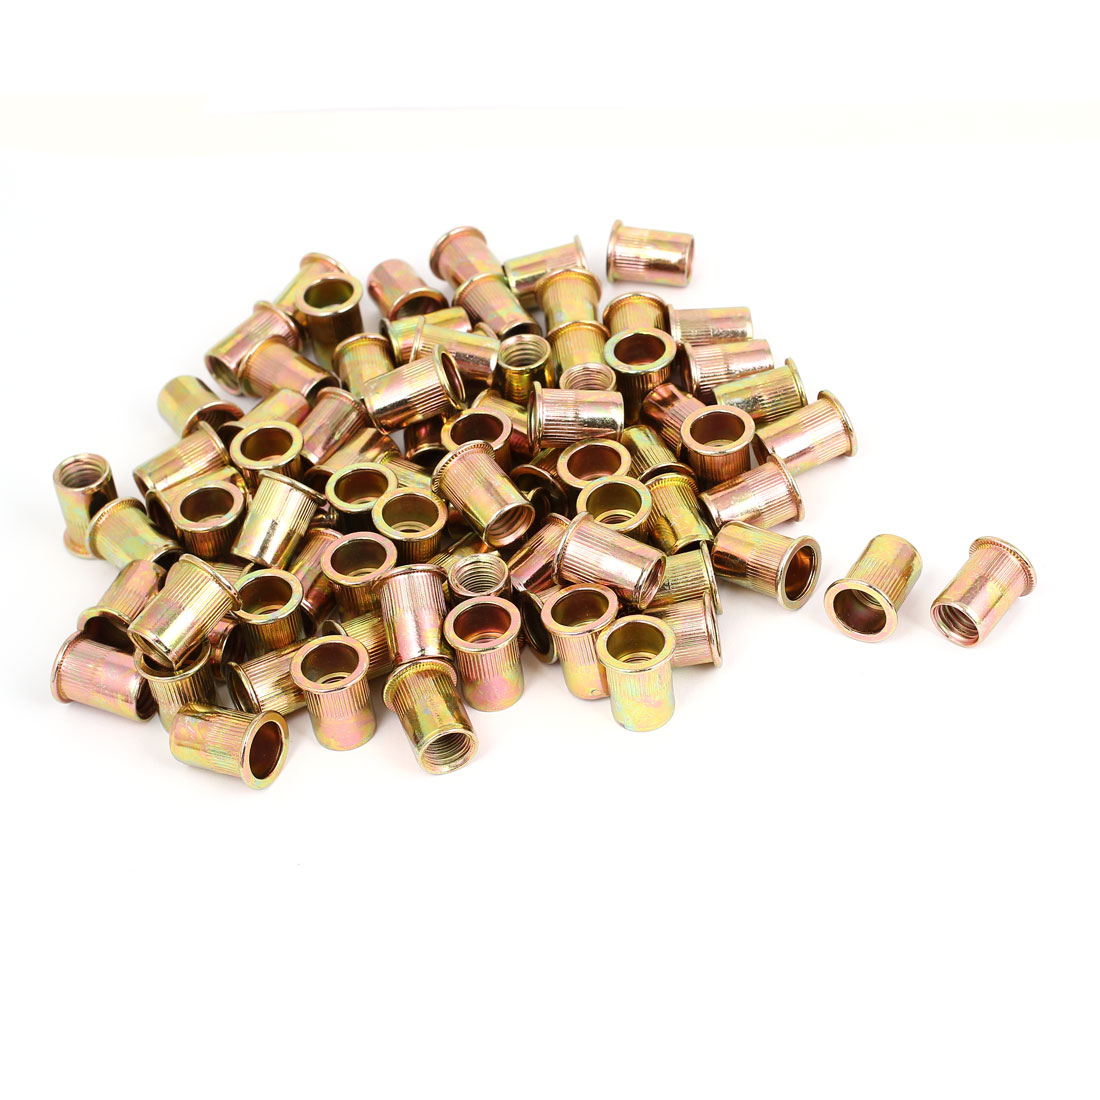 100 Pcs M12x22mm Flat Head Blind Rivet Nut Insert Nutsert Fasteners